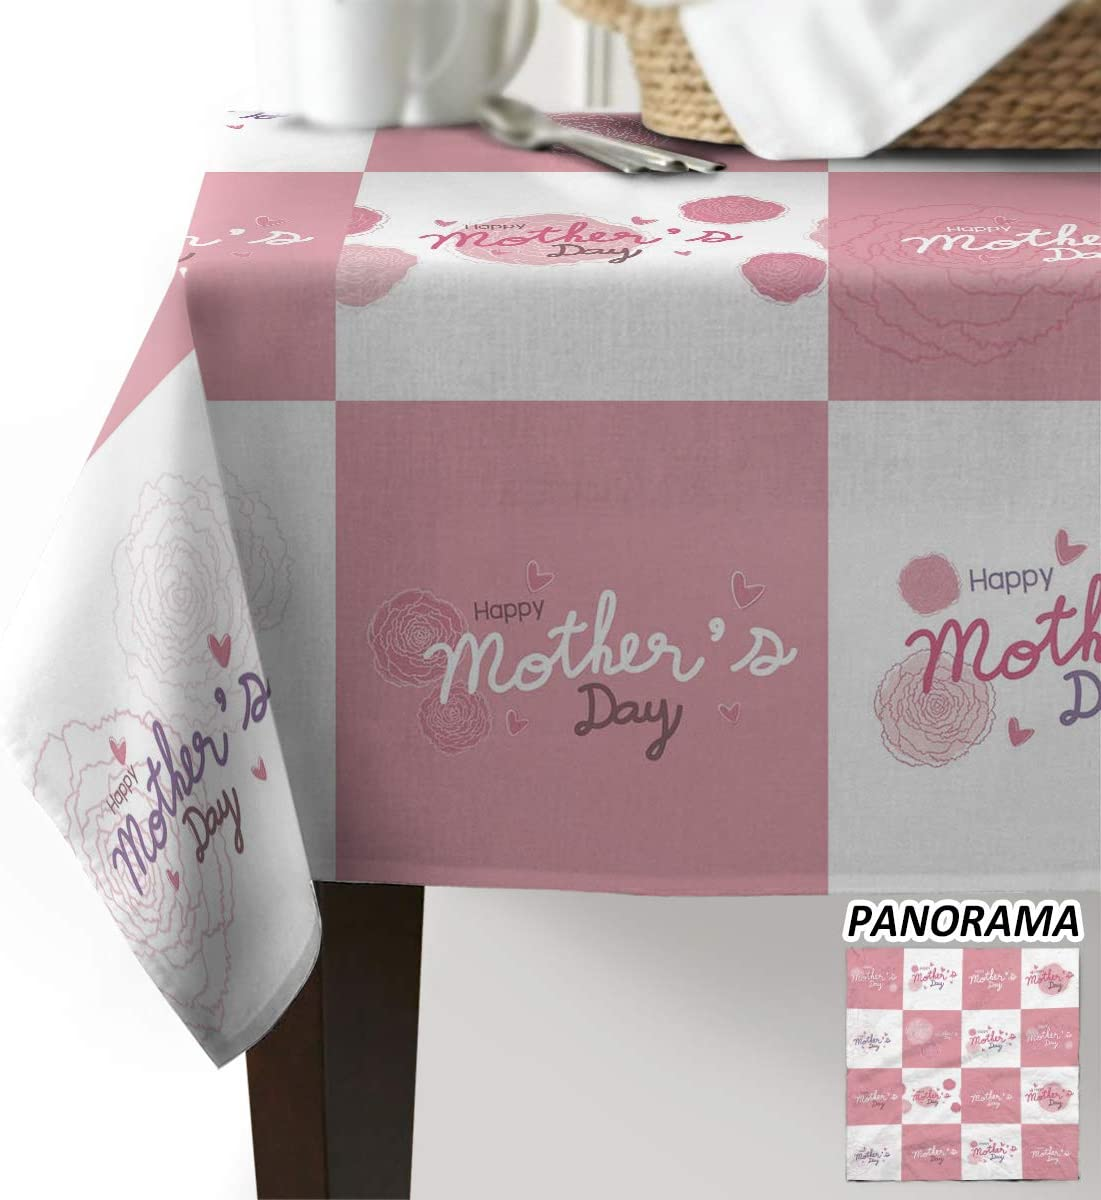 Advancey Rectangle Tablecloth - 60x84 Happy 売れ筋ランキング inch Mother's お歳暮 Pi Day